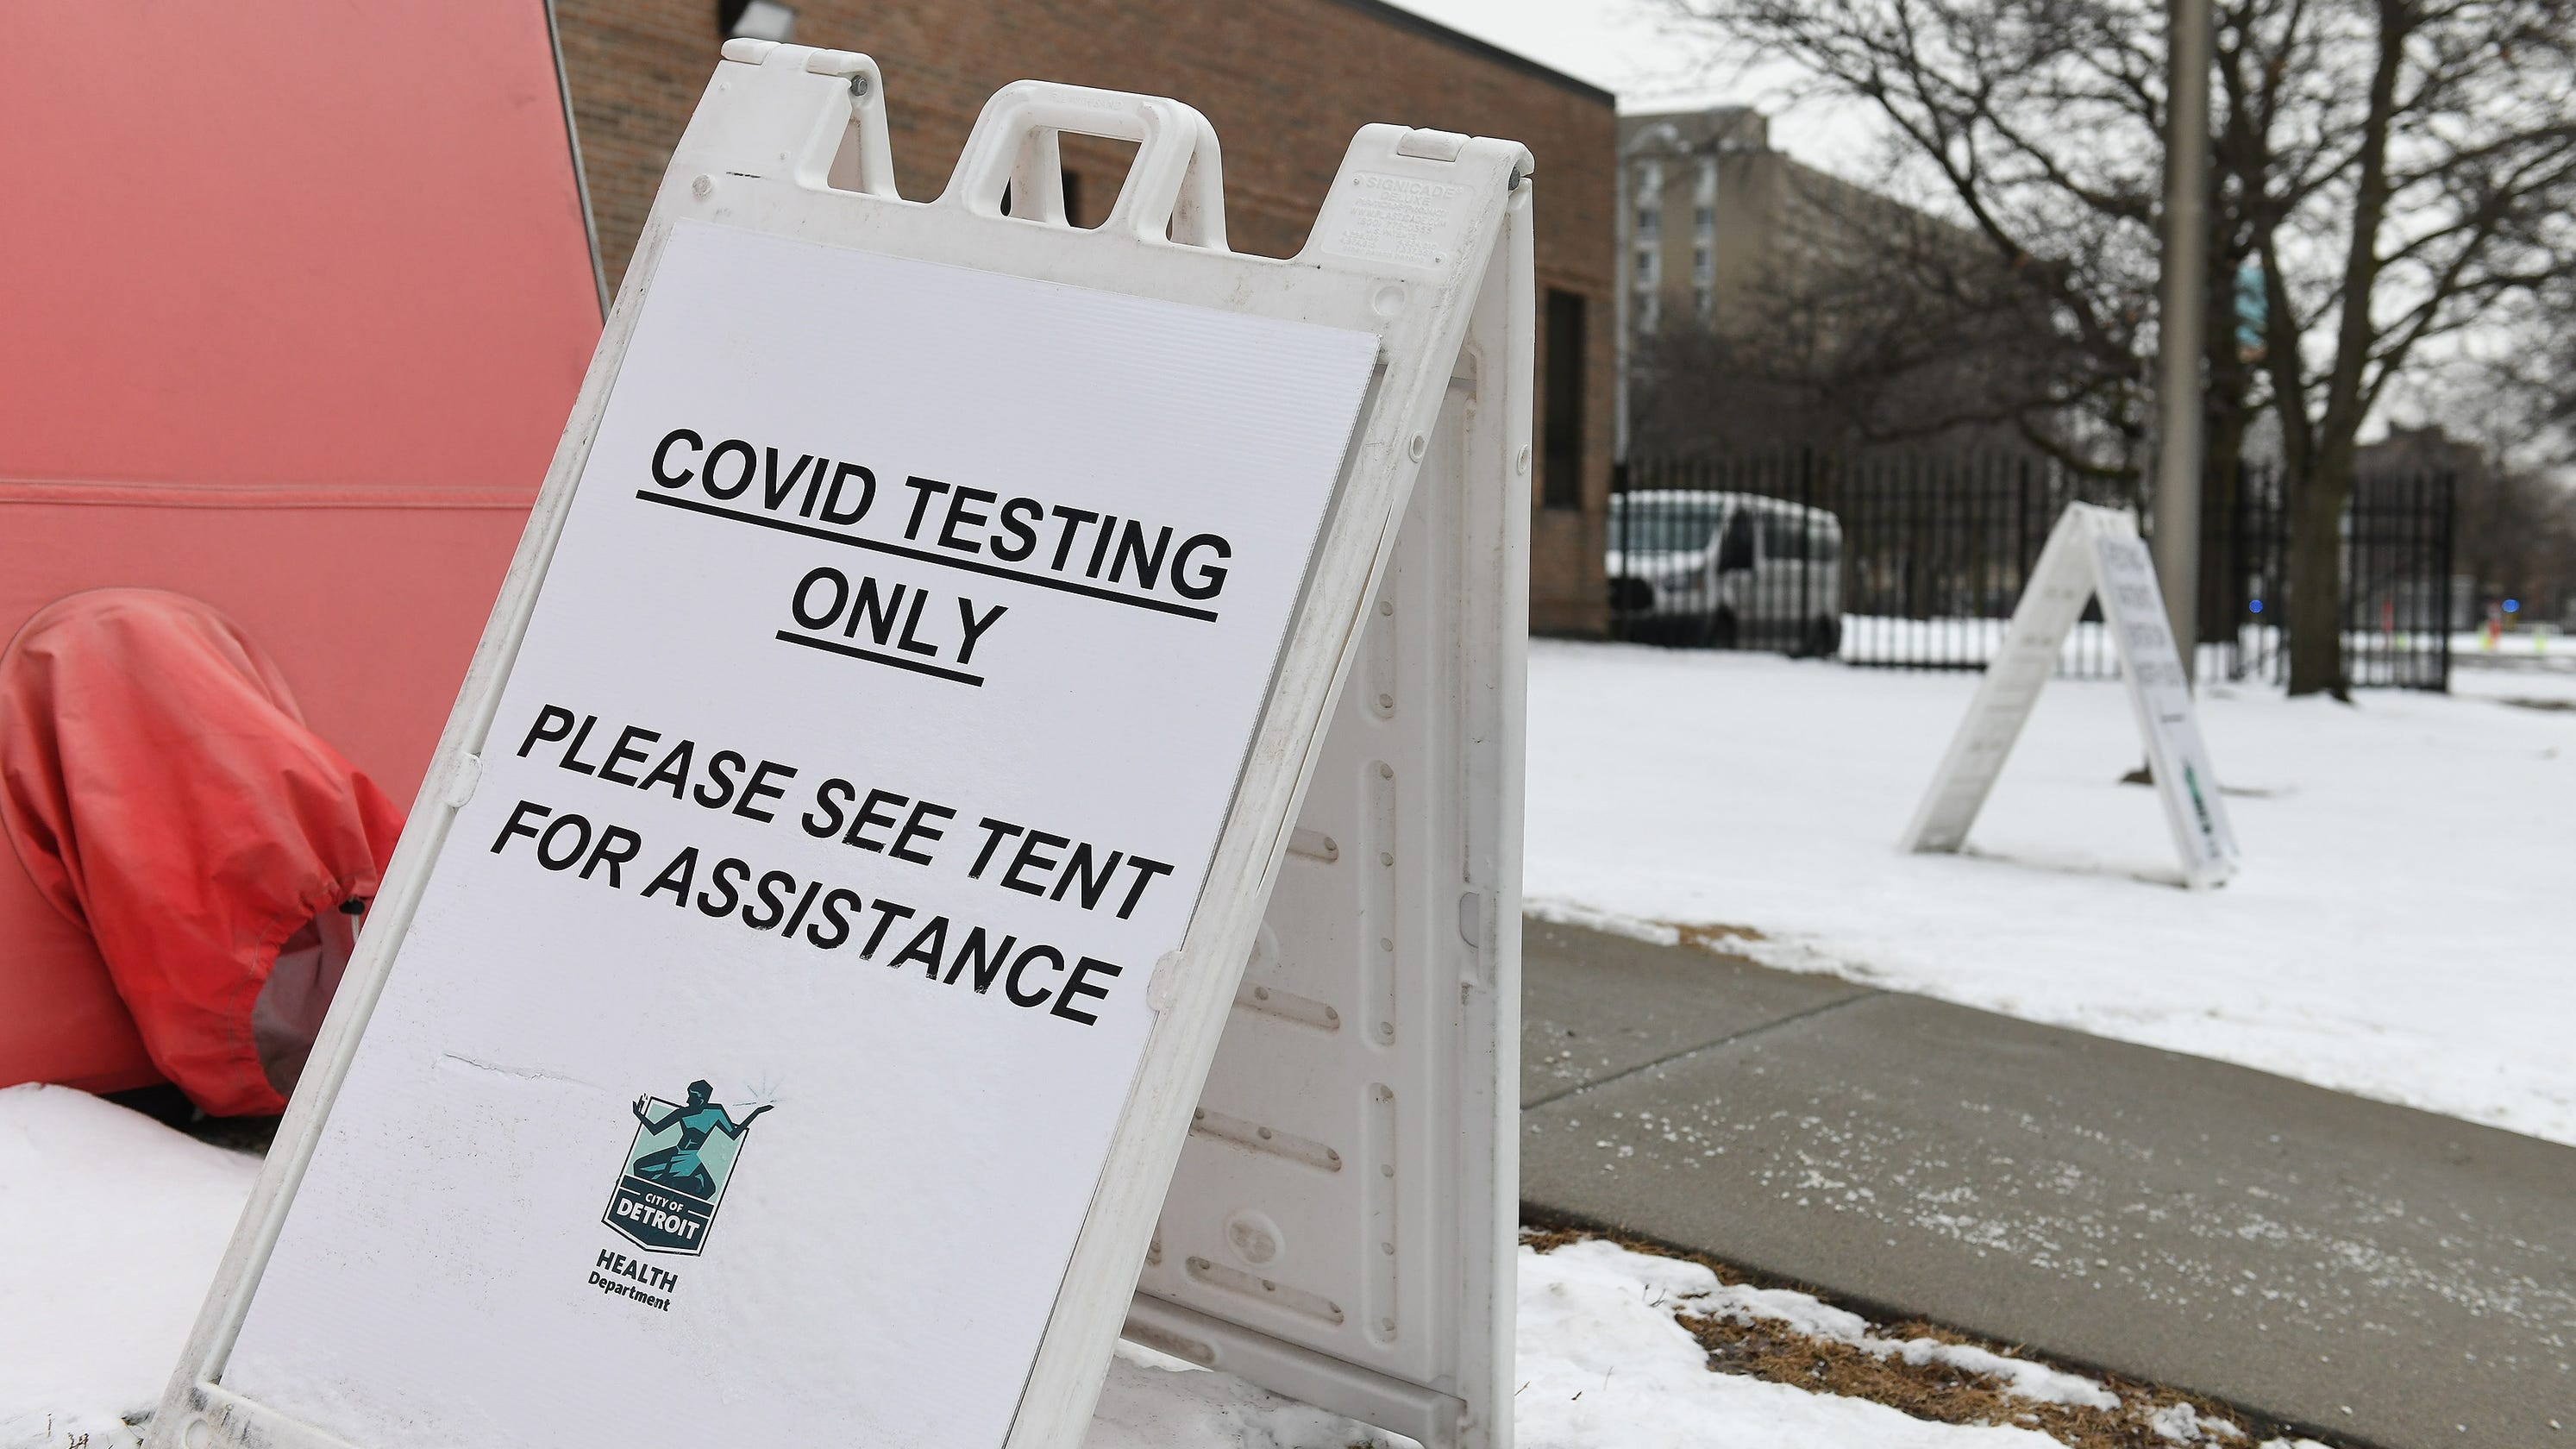 State worker tests positive for COVID-19 variant as Michigan cases grow - The Detroit News